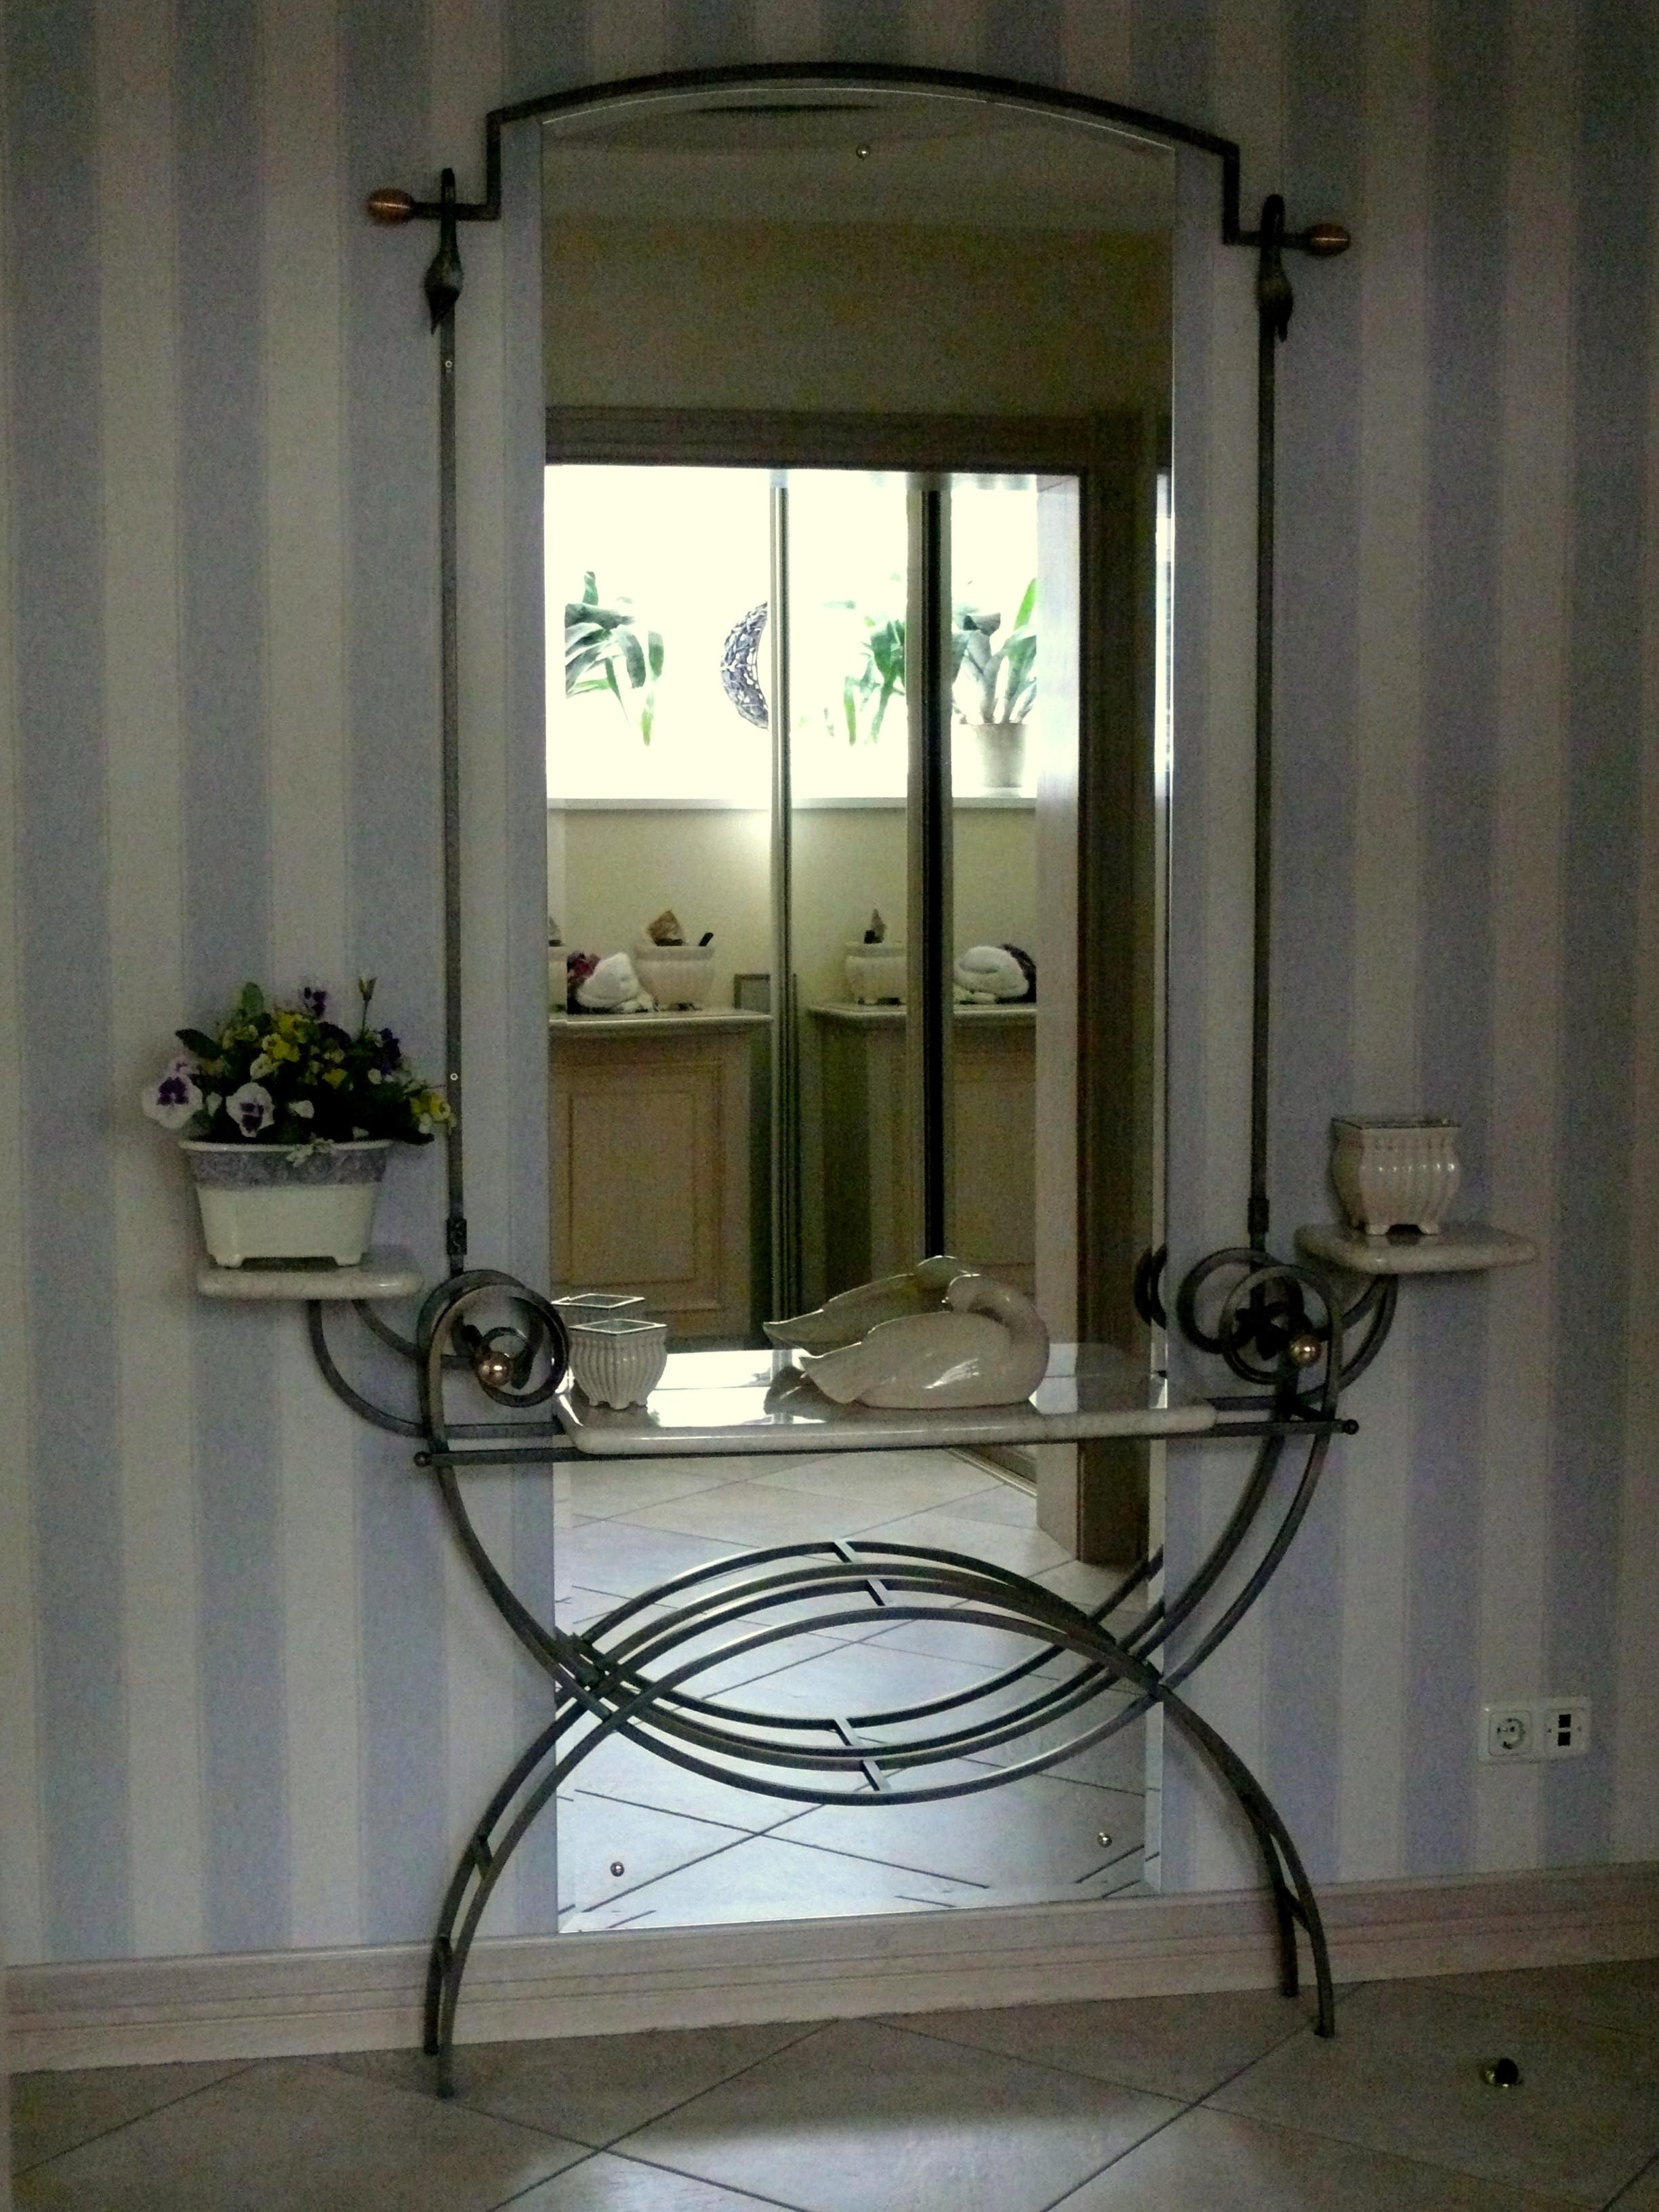 Wrought Iron In Home Decor – L' Essenziale In Black Wrought Iron Mirrors (Image 17 of 20)